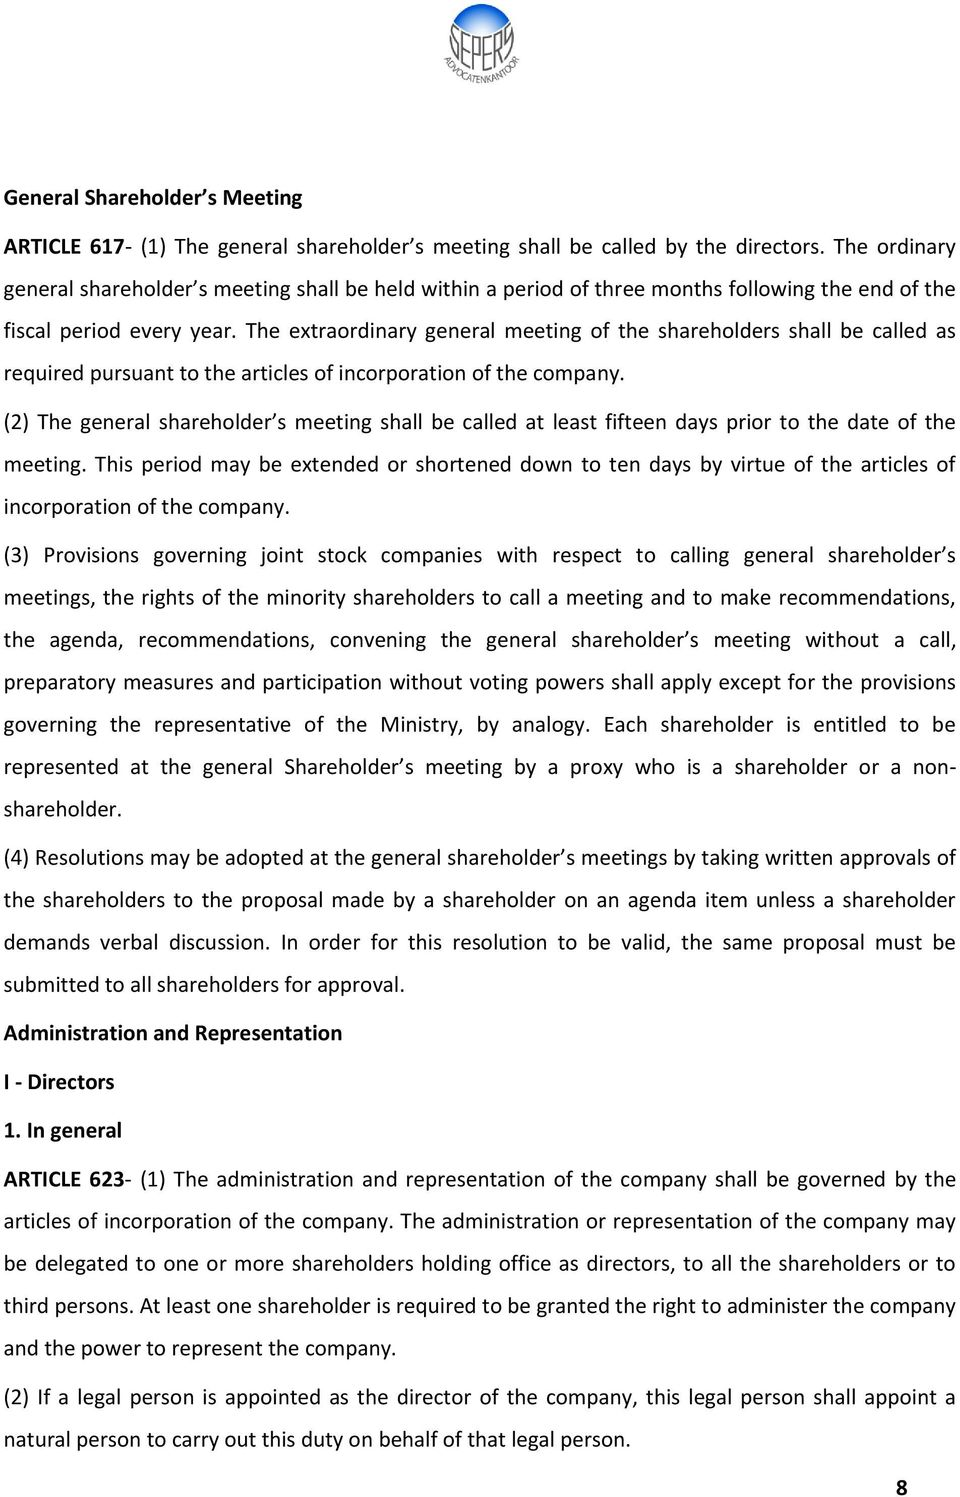 The extraordinary general meeting of the shareholders shall be called as required pursuant to the articles of incorporation of the company.